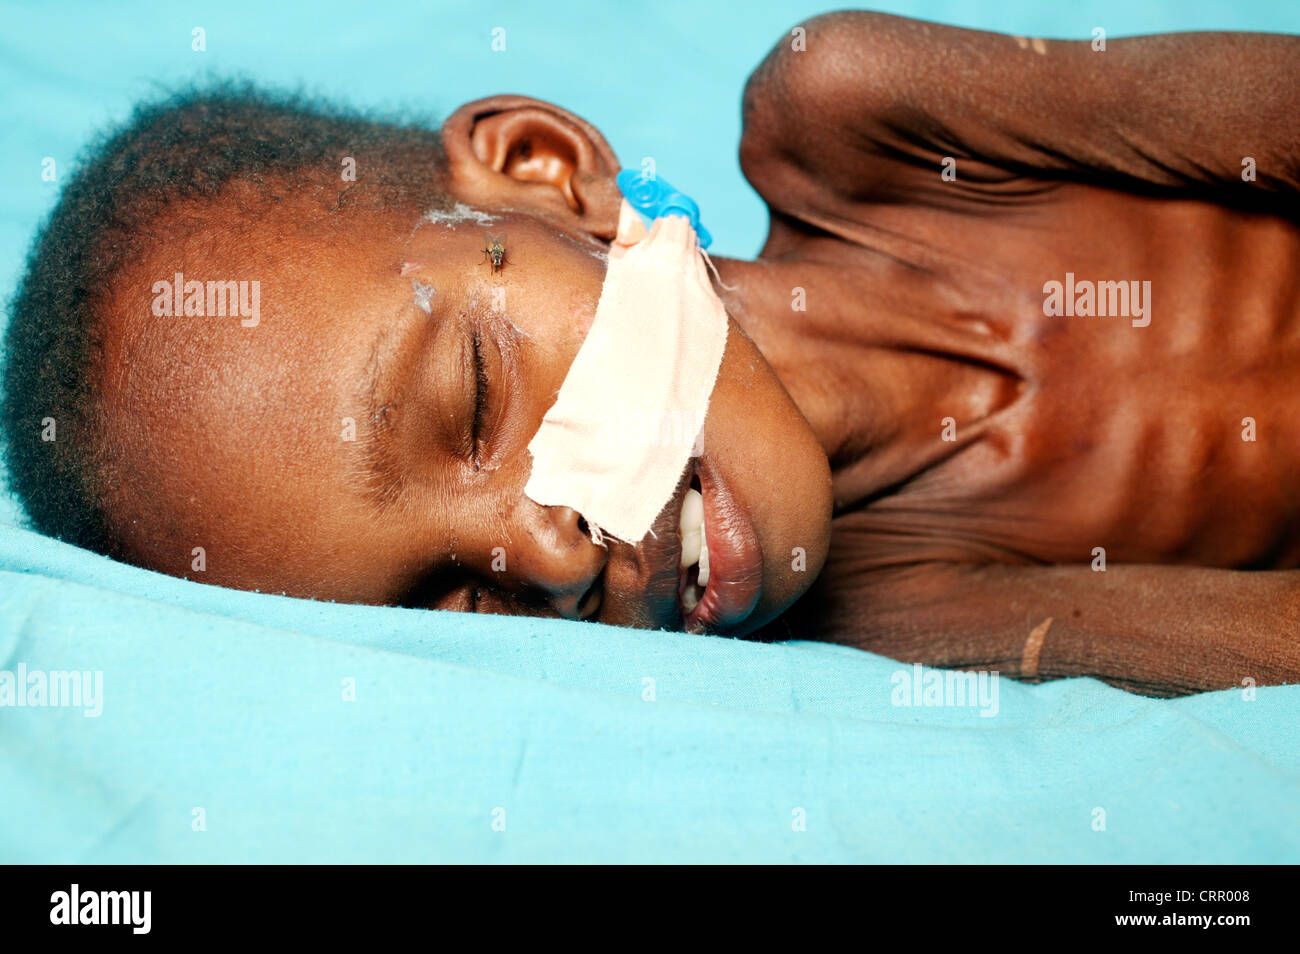 A 2 year old boy suffering from serious malnutrition with severe wastening and loss of subcutaneous